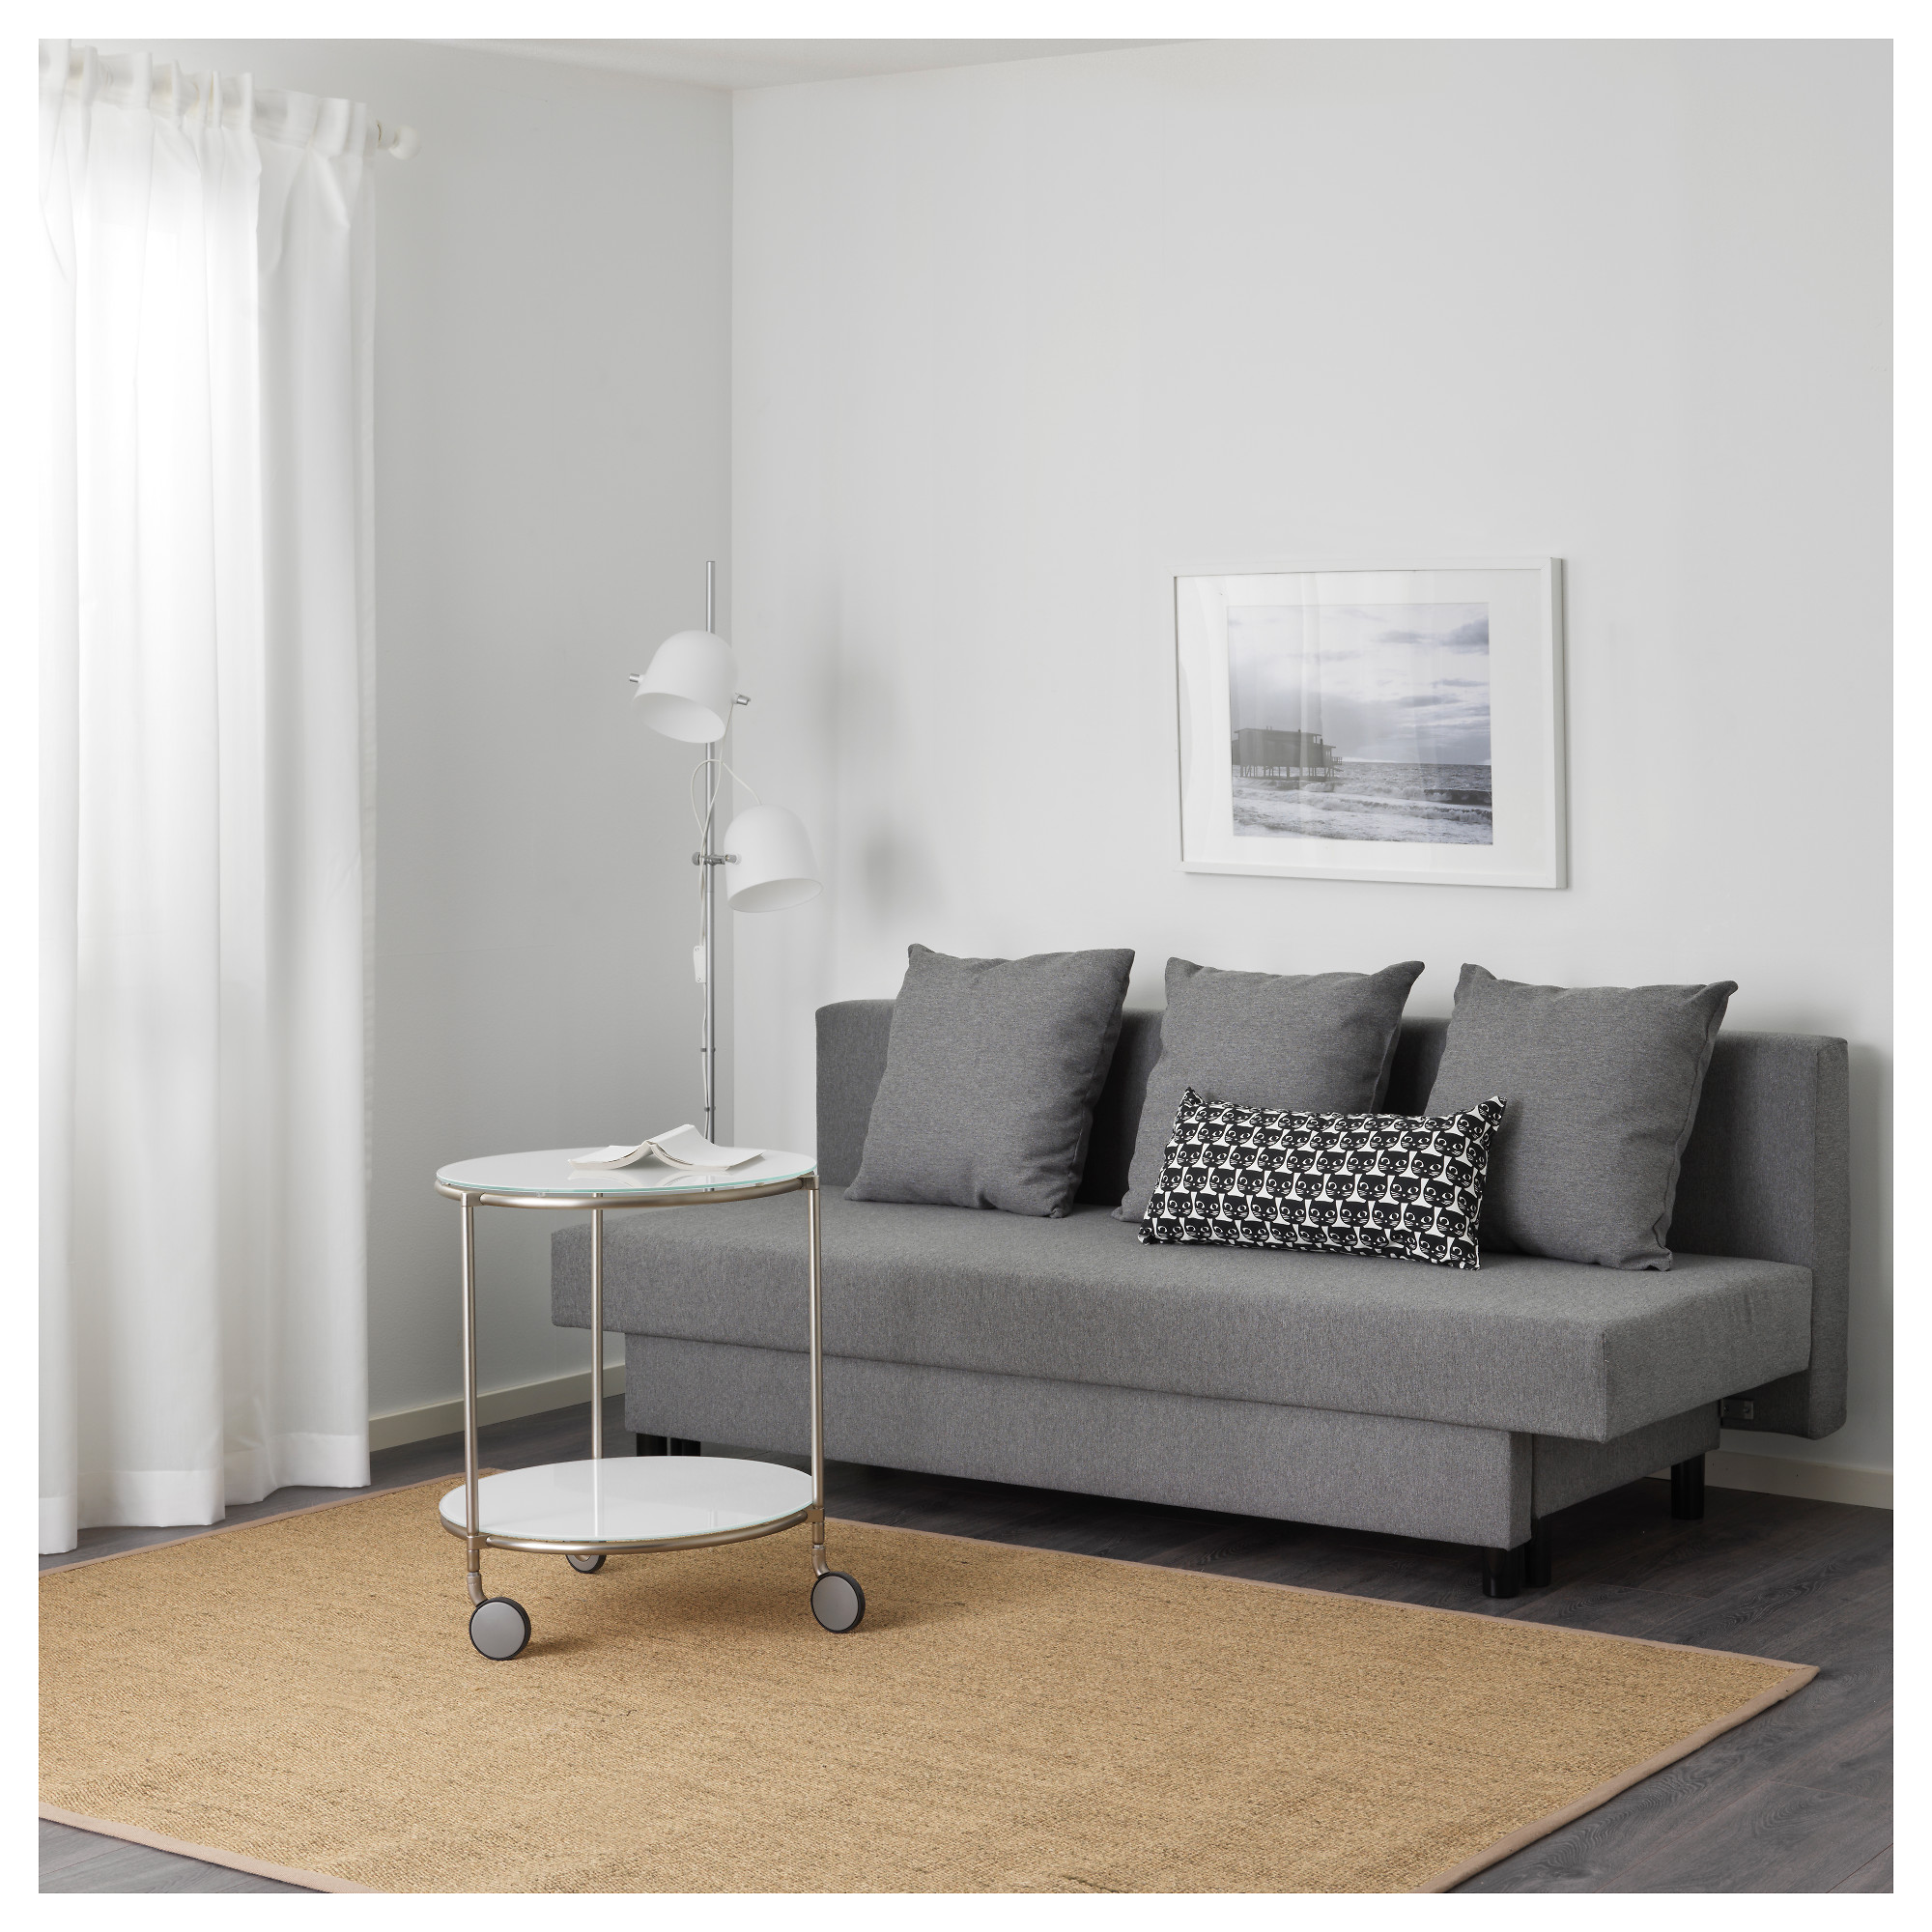 Canape Ikea Backabro 3 Places Sofa Cama Canape Ikea Fashionsneakers Club